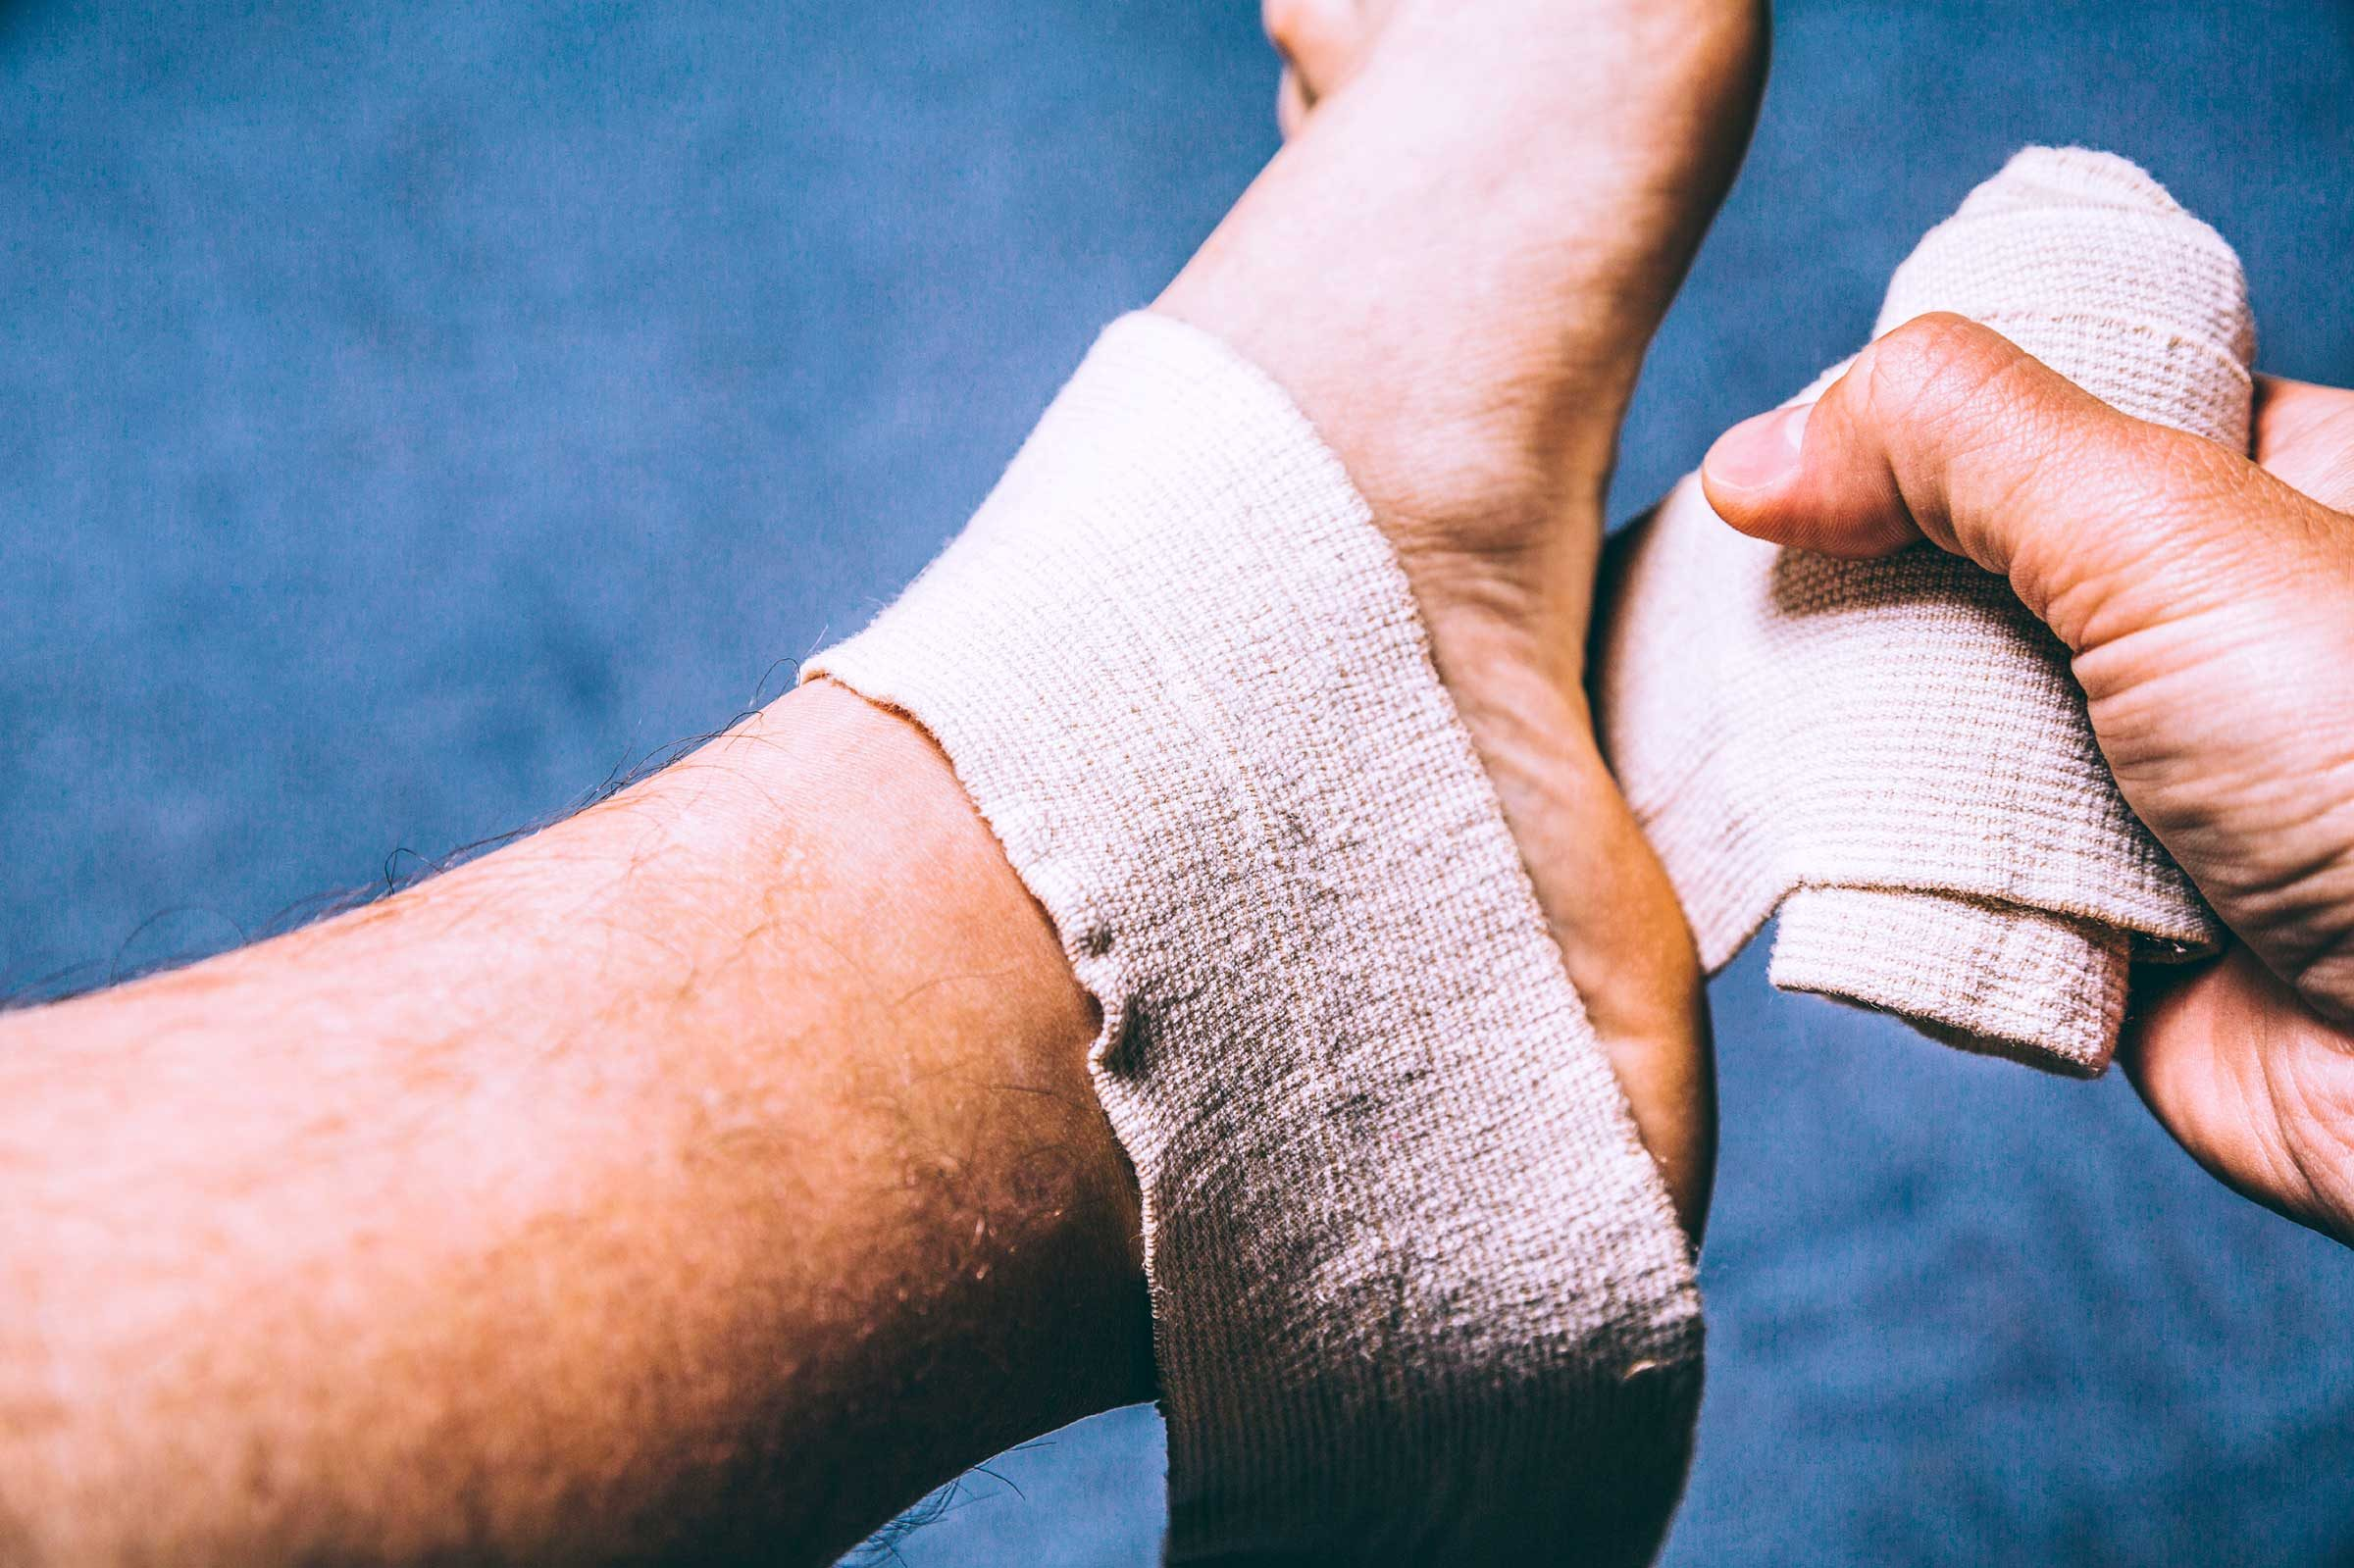 Muscle pain relief, man wrapping foot in tensor bandage